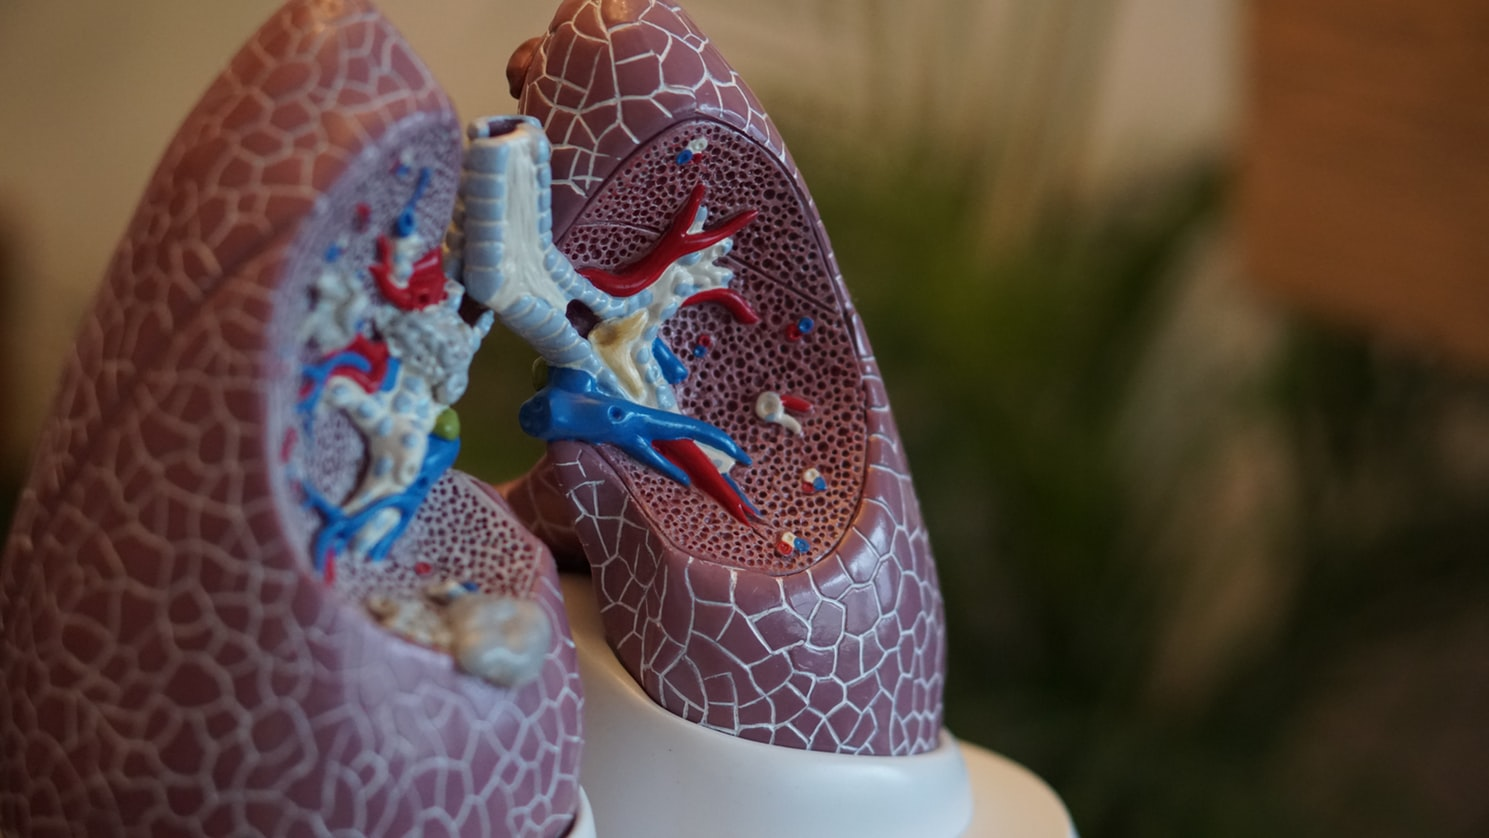 A mold of the lungs. Lungs can be affected by dangerous illnesses for seniors